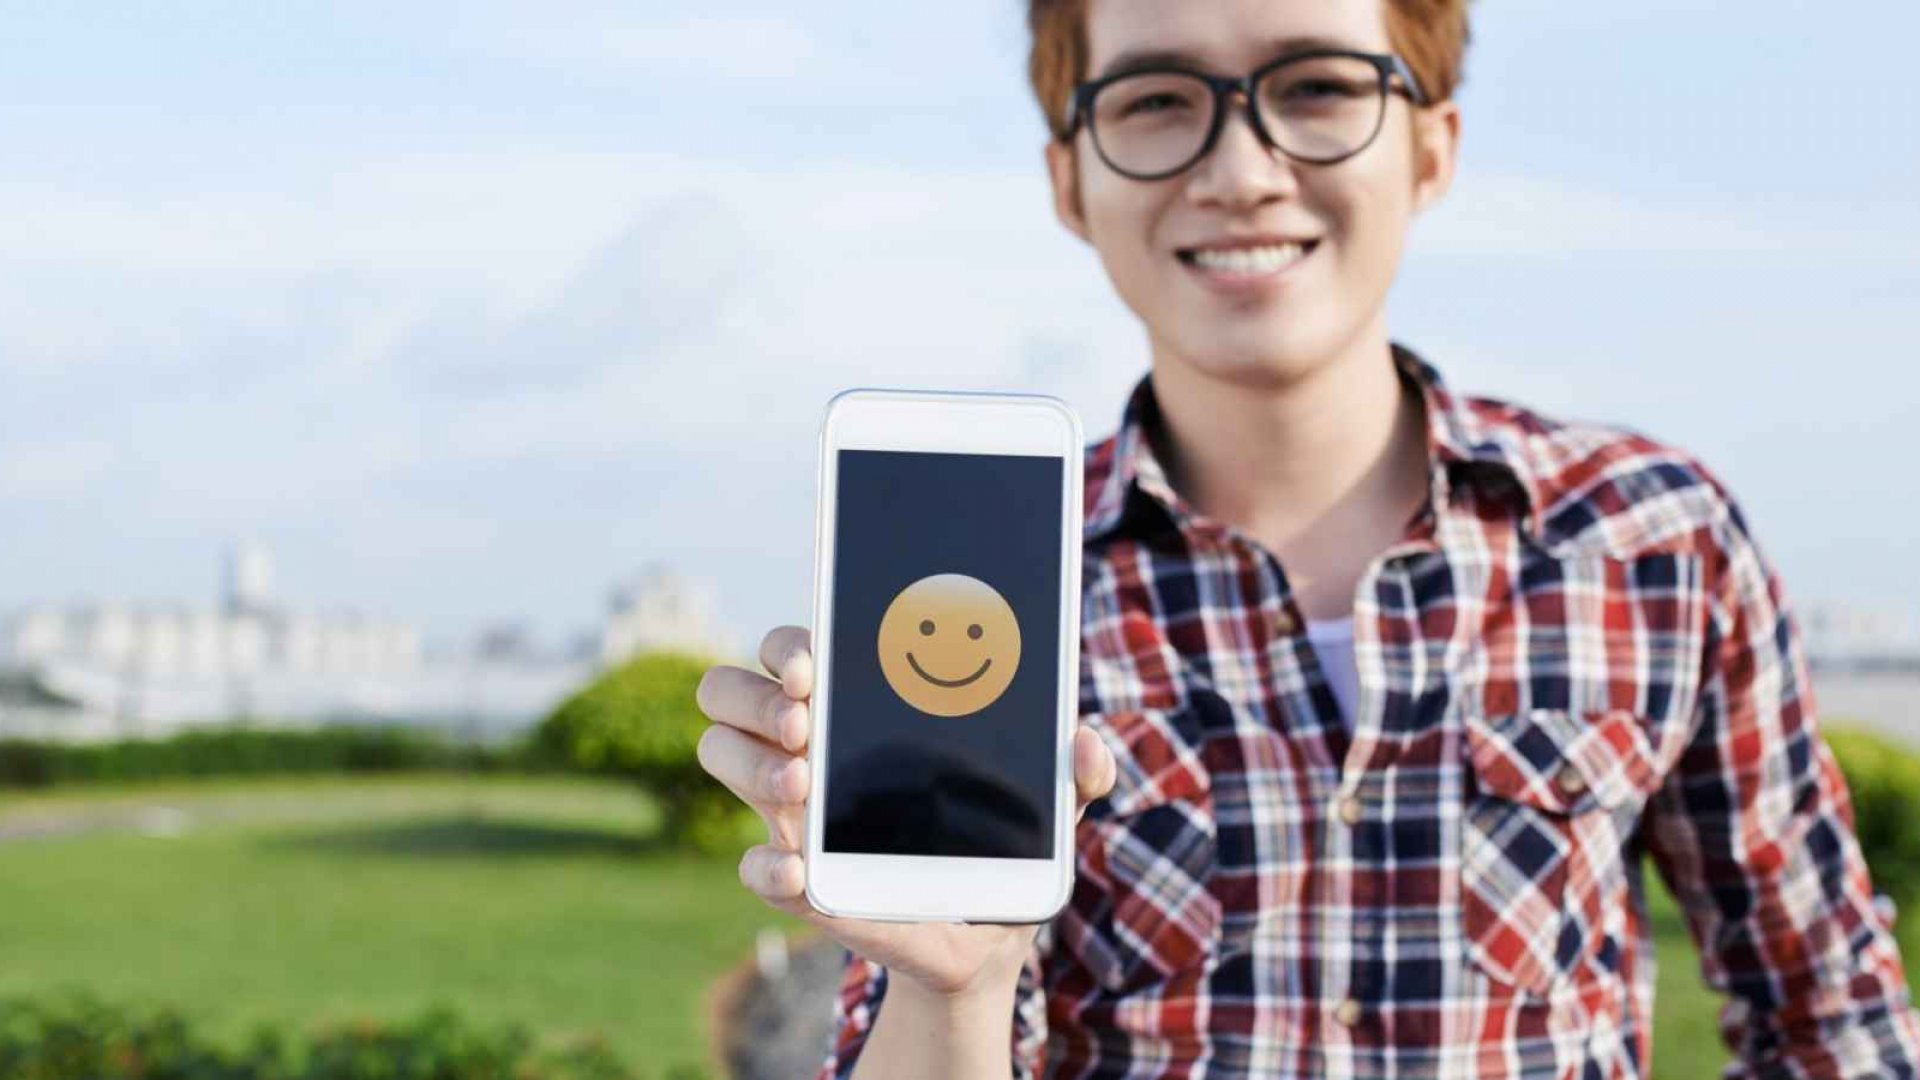 Could Emojis Be the Future of International Communication?